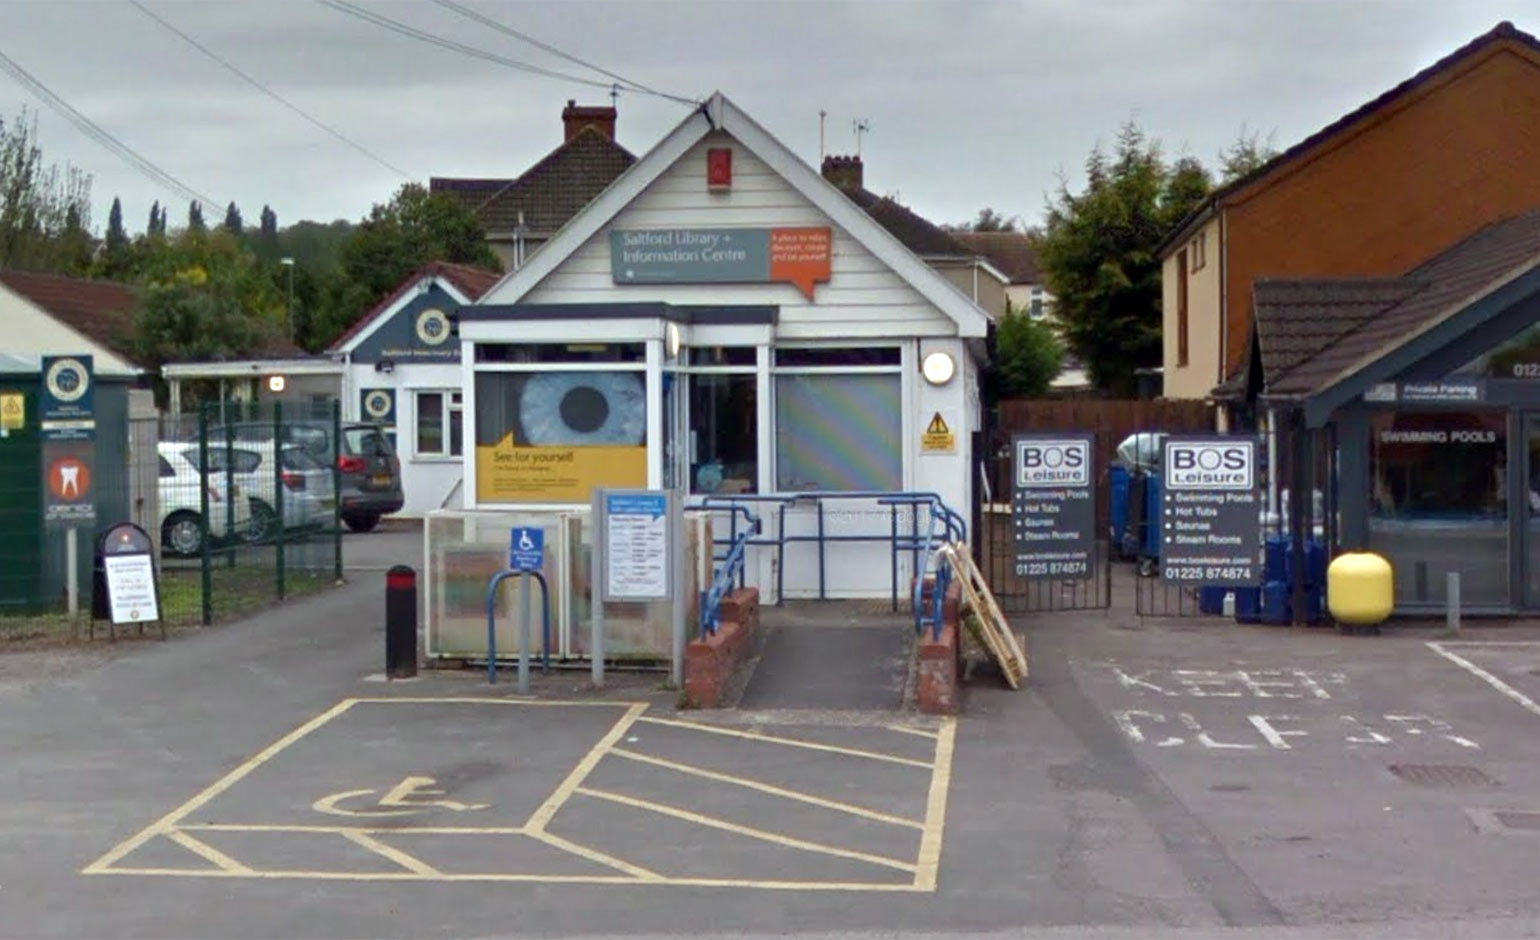 Post Office set to reopen in Saltford later this year with new community library